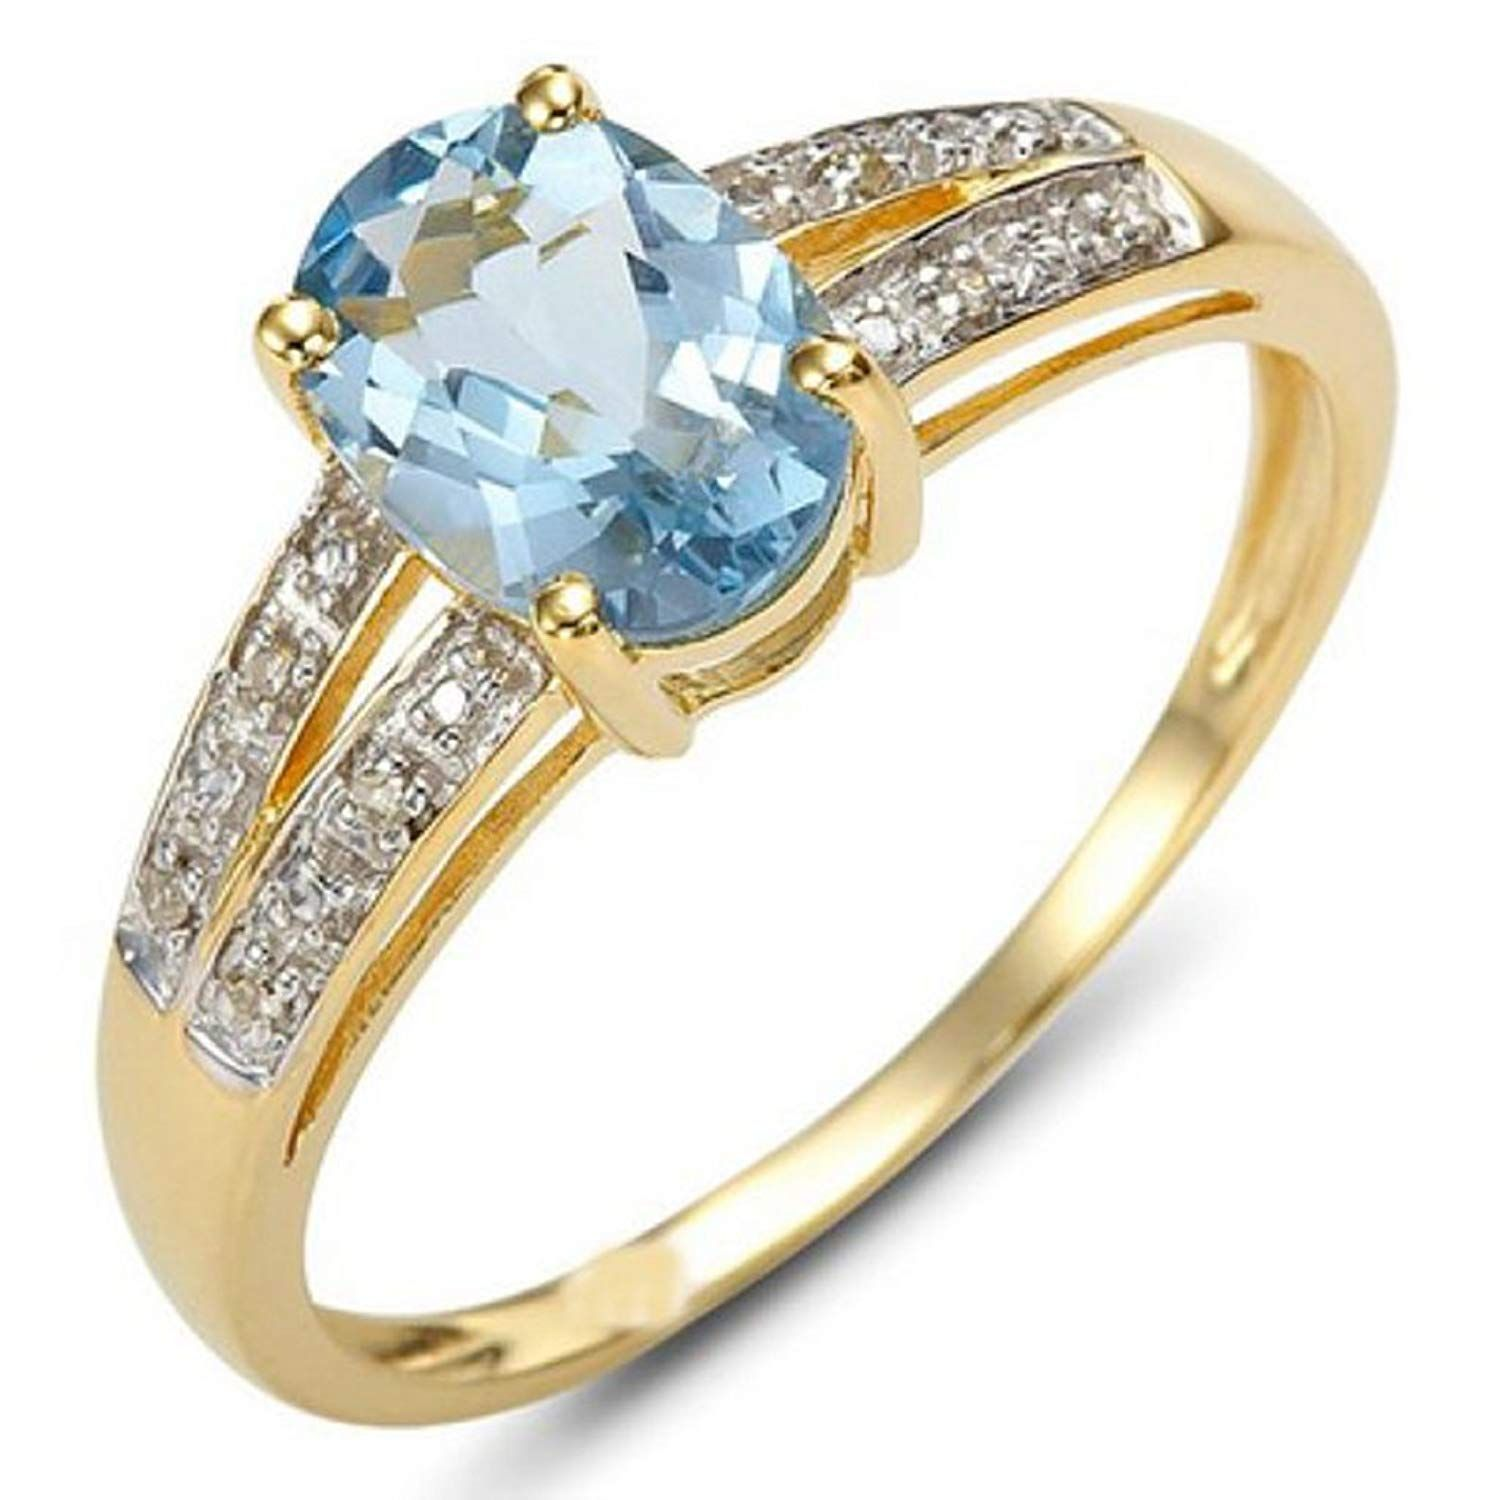 Huanhuan Women S Oval Blue Aquamarine Cz Solitaire Ring Yellow Gold Filled Wedding Jewelry Size 6 To 10 M Women Rings Gold Filled Ring Wedding Jewelry Sets